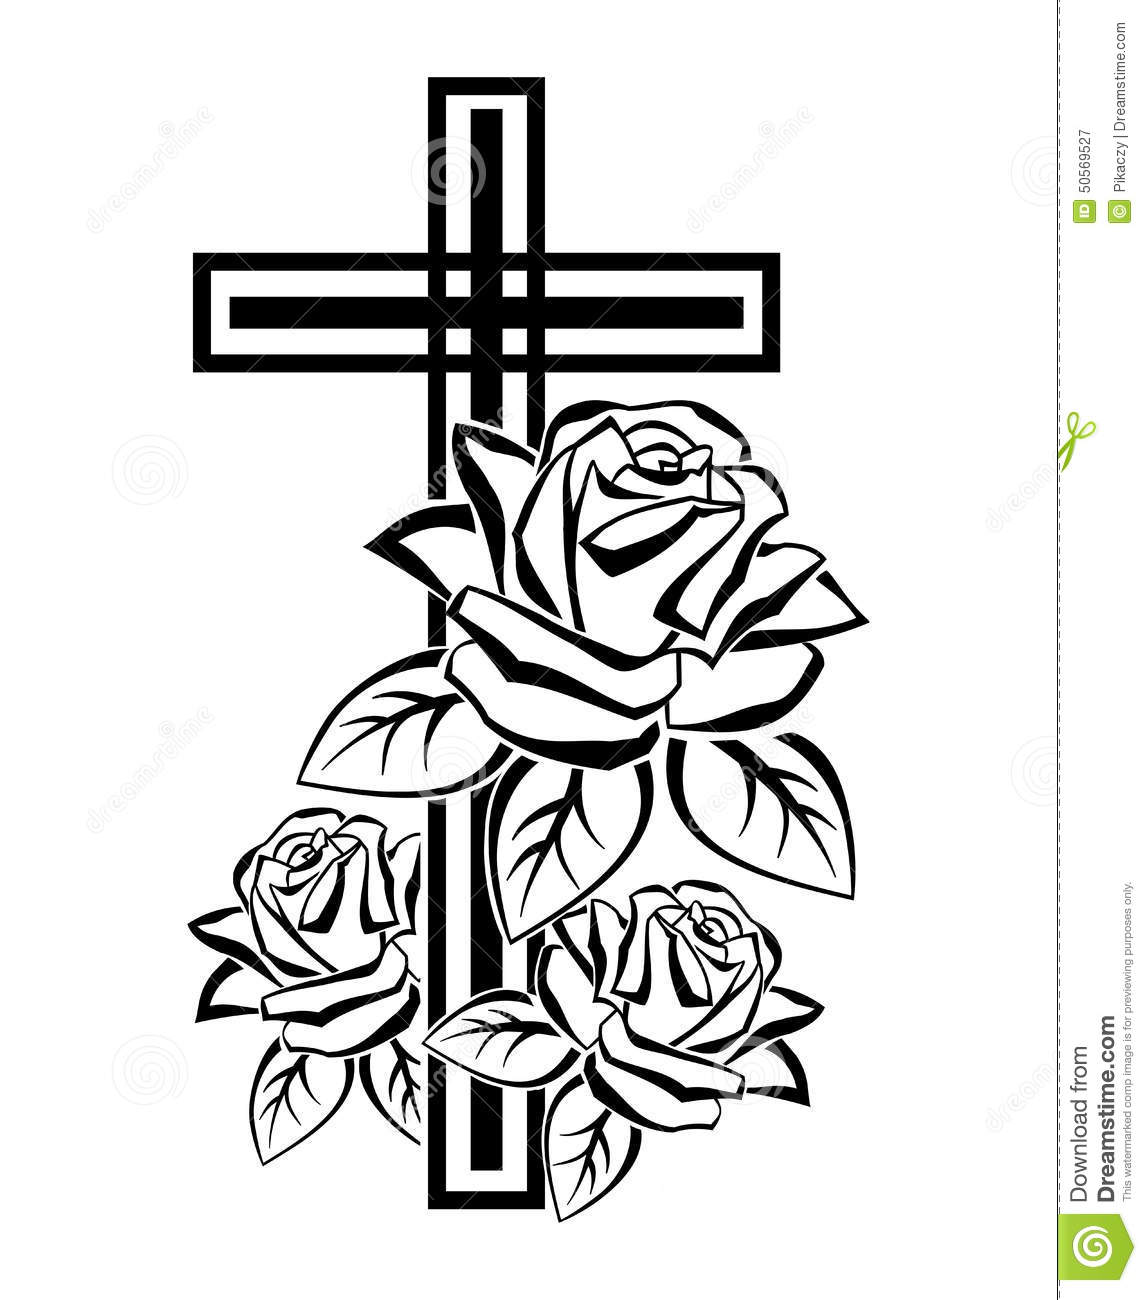 Stock Illustration Crucifix Roses Black White Illustration Contours Image50569527 also Various Reasons To Dance further 109704940895937721 as well Tall Dancing Ballerina Silhouette Ballet moreover 2. on ballet slippers black and white clipart